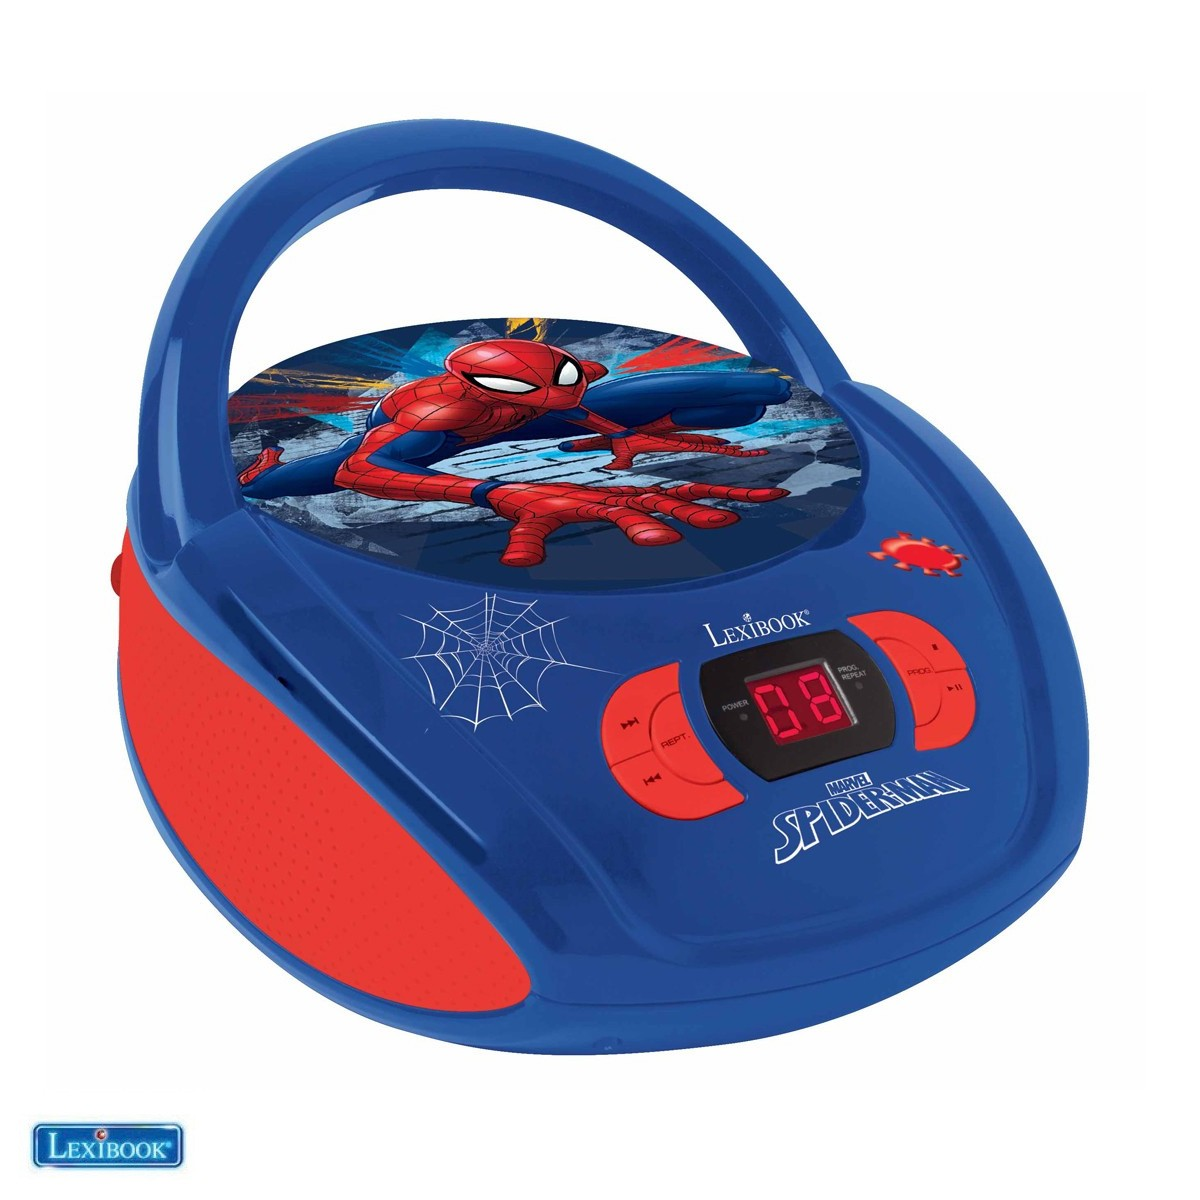 RCD108SP Radio Lecteur CD Spider Man - Lexibook